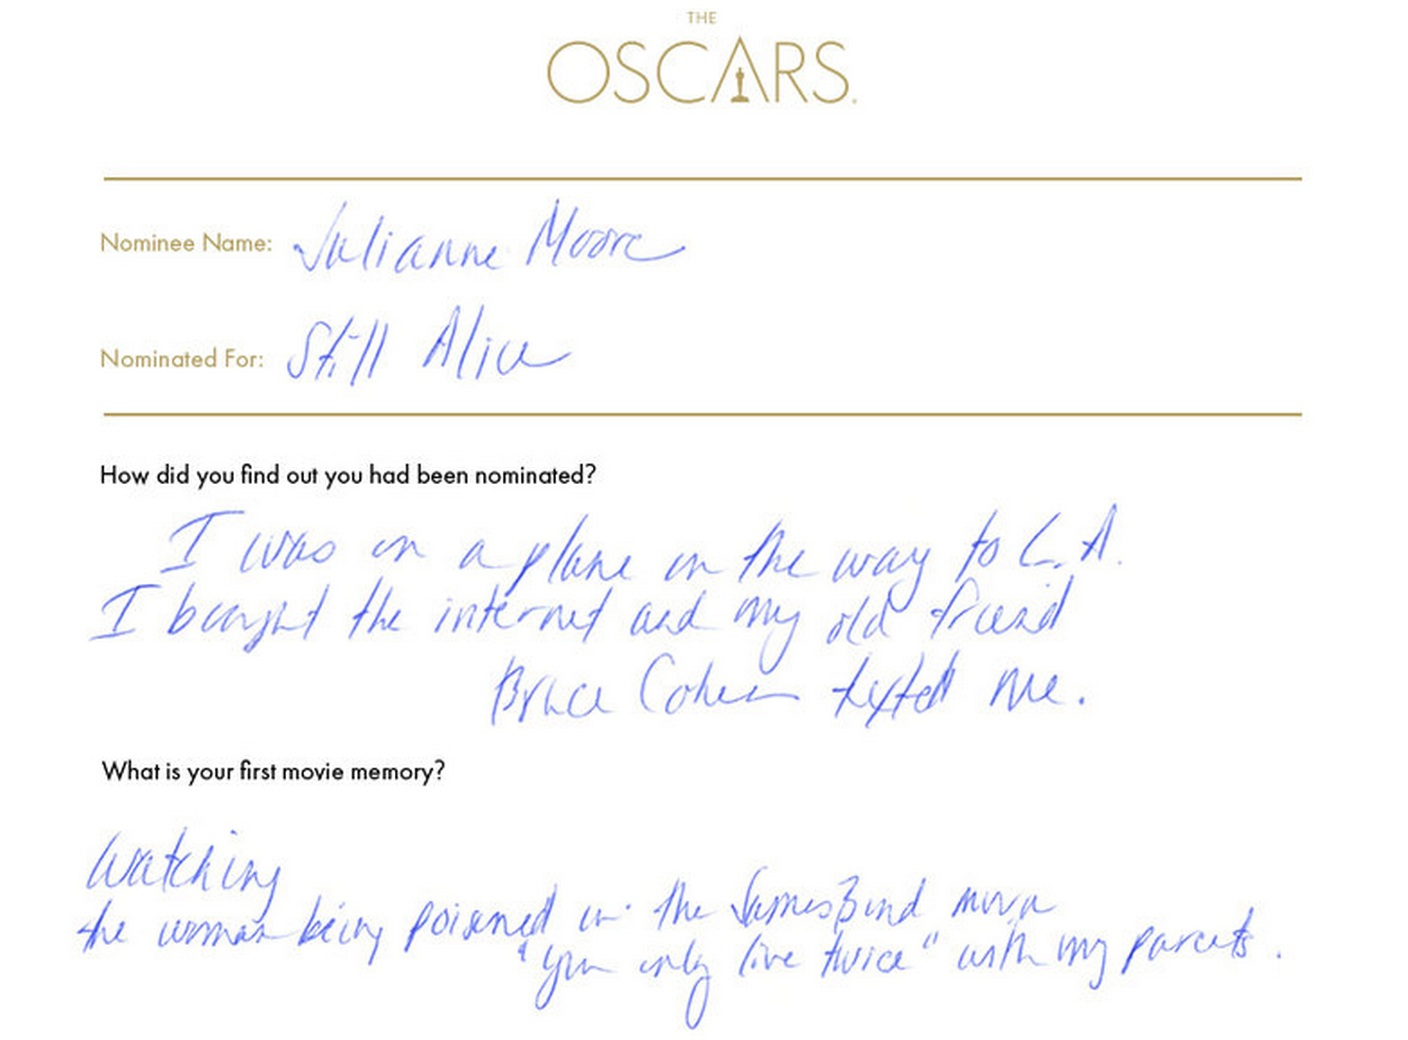 52 of the Oscar nominees, in their own words